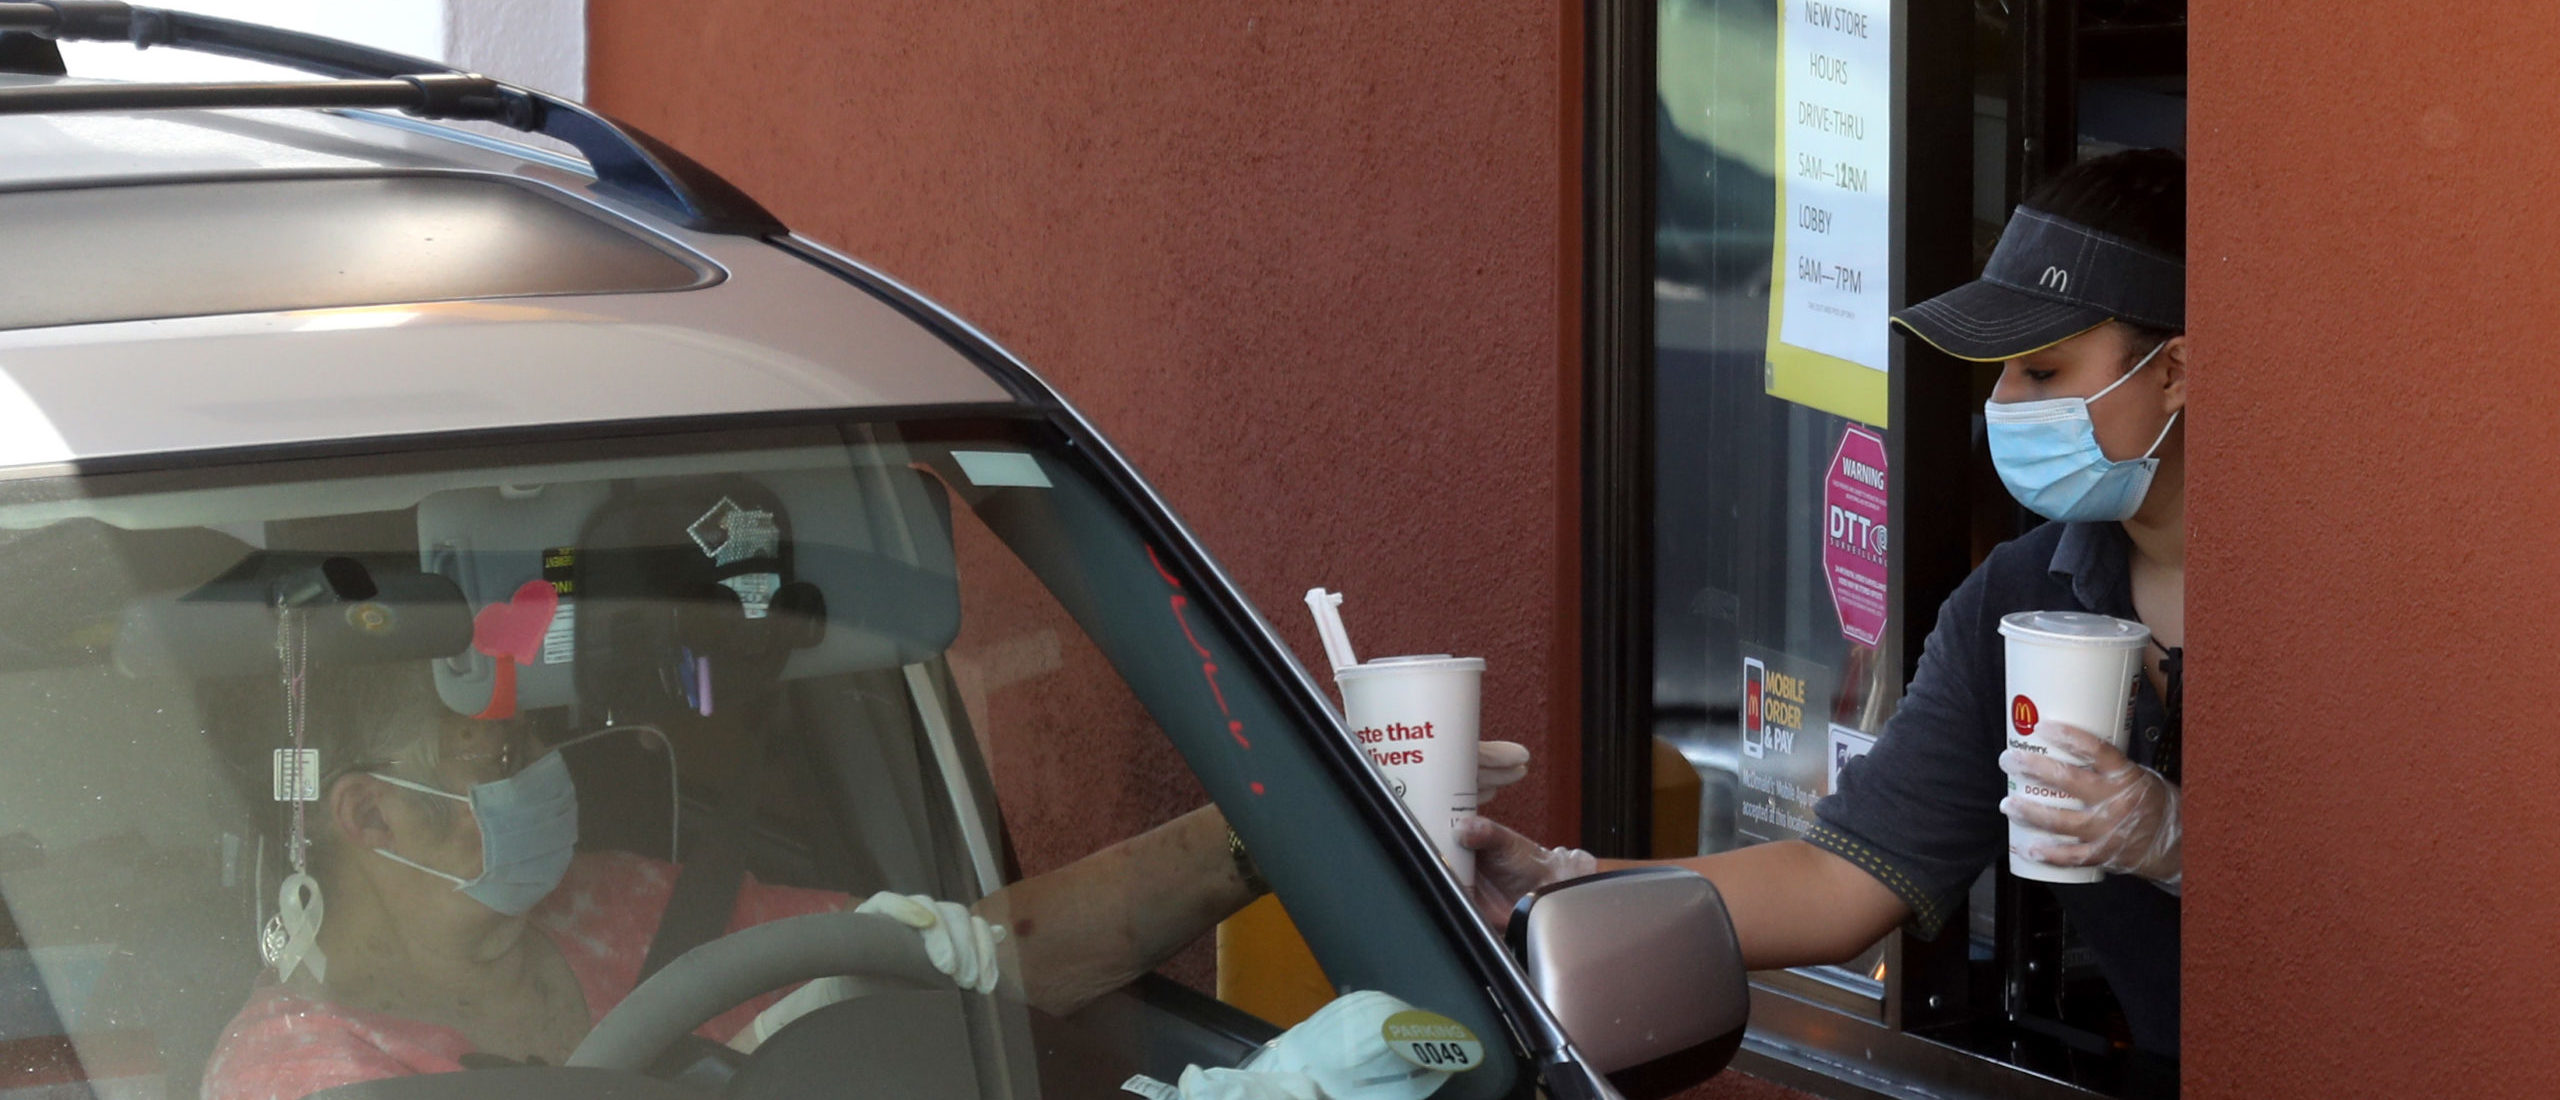 A worker wears a mask and gloves as she hands soft drinks to a customer at a McDonald's drive-thru on April 22, 2020 in Novato, California. (Photo by Justin Sullivan/Getty Images)